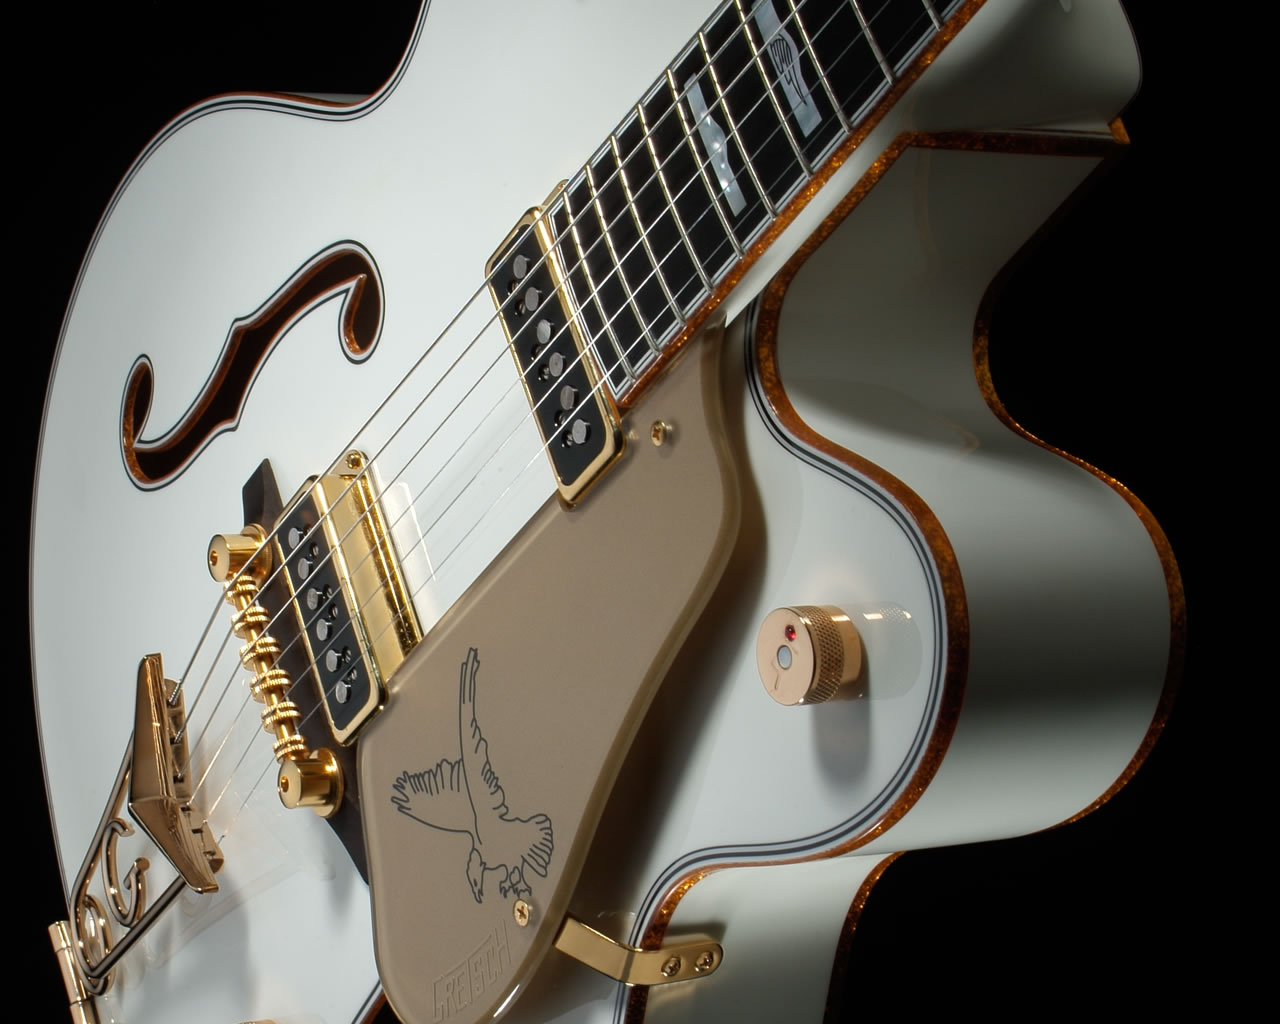 The Gretsch White Falcon